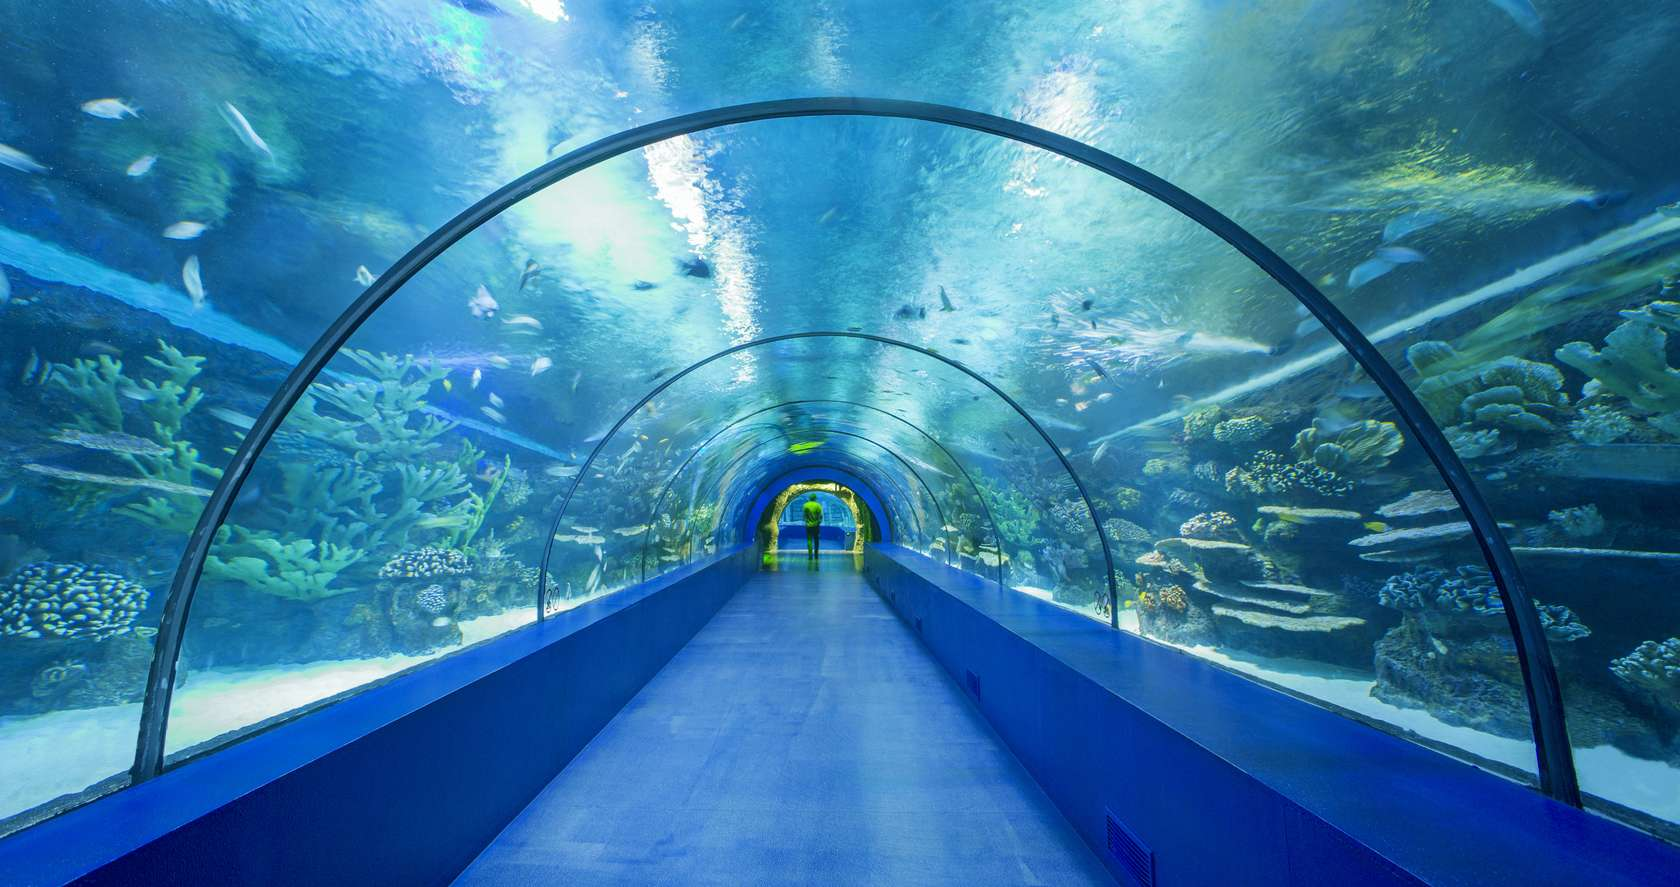 Antalya Aquarium - Architizer